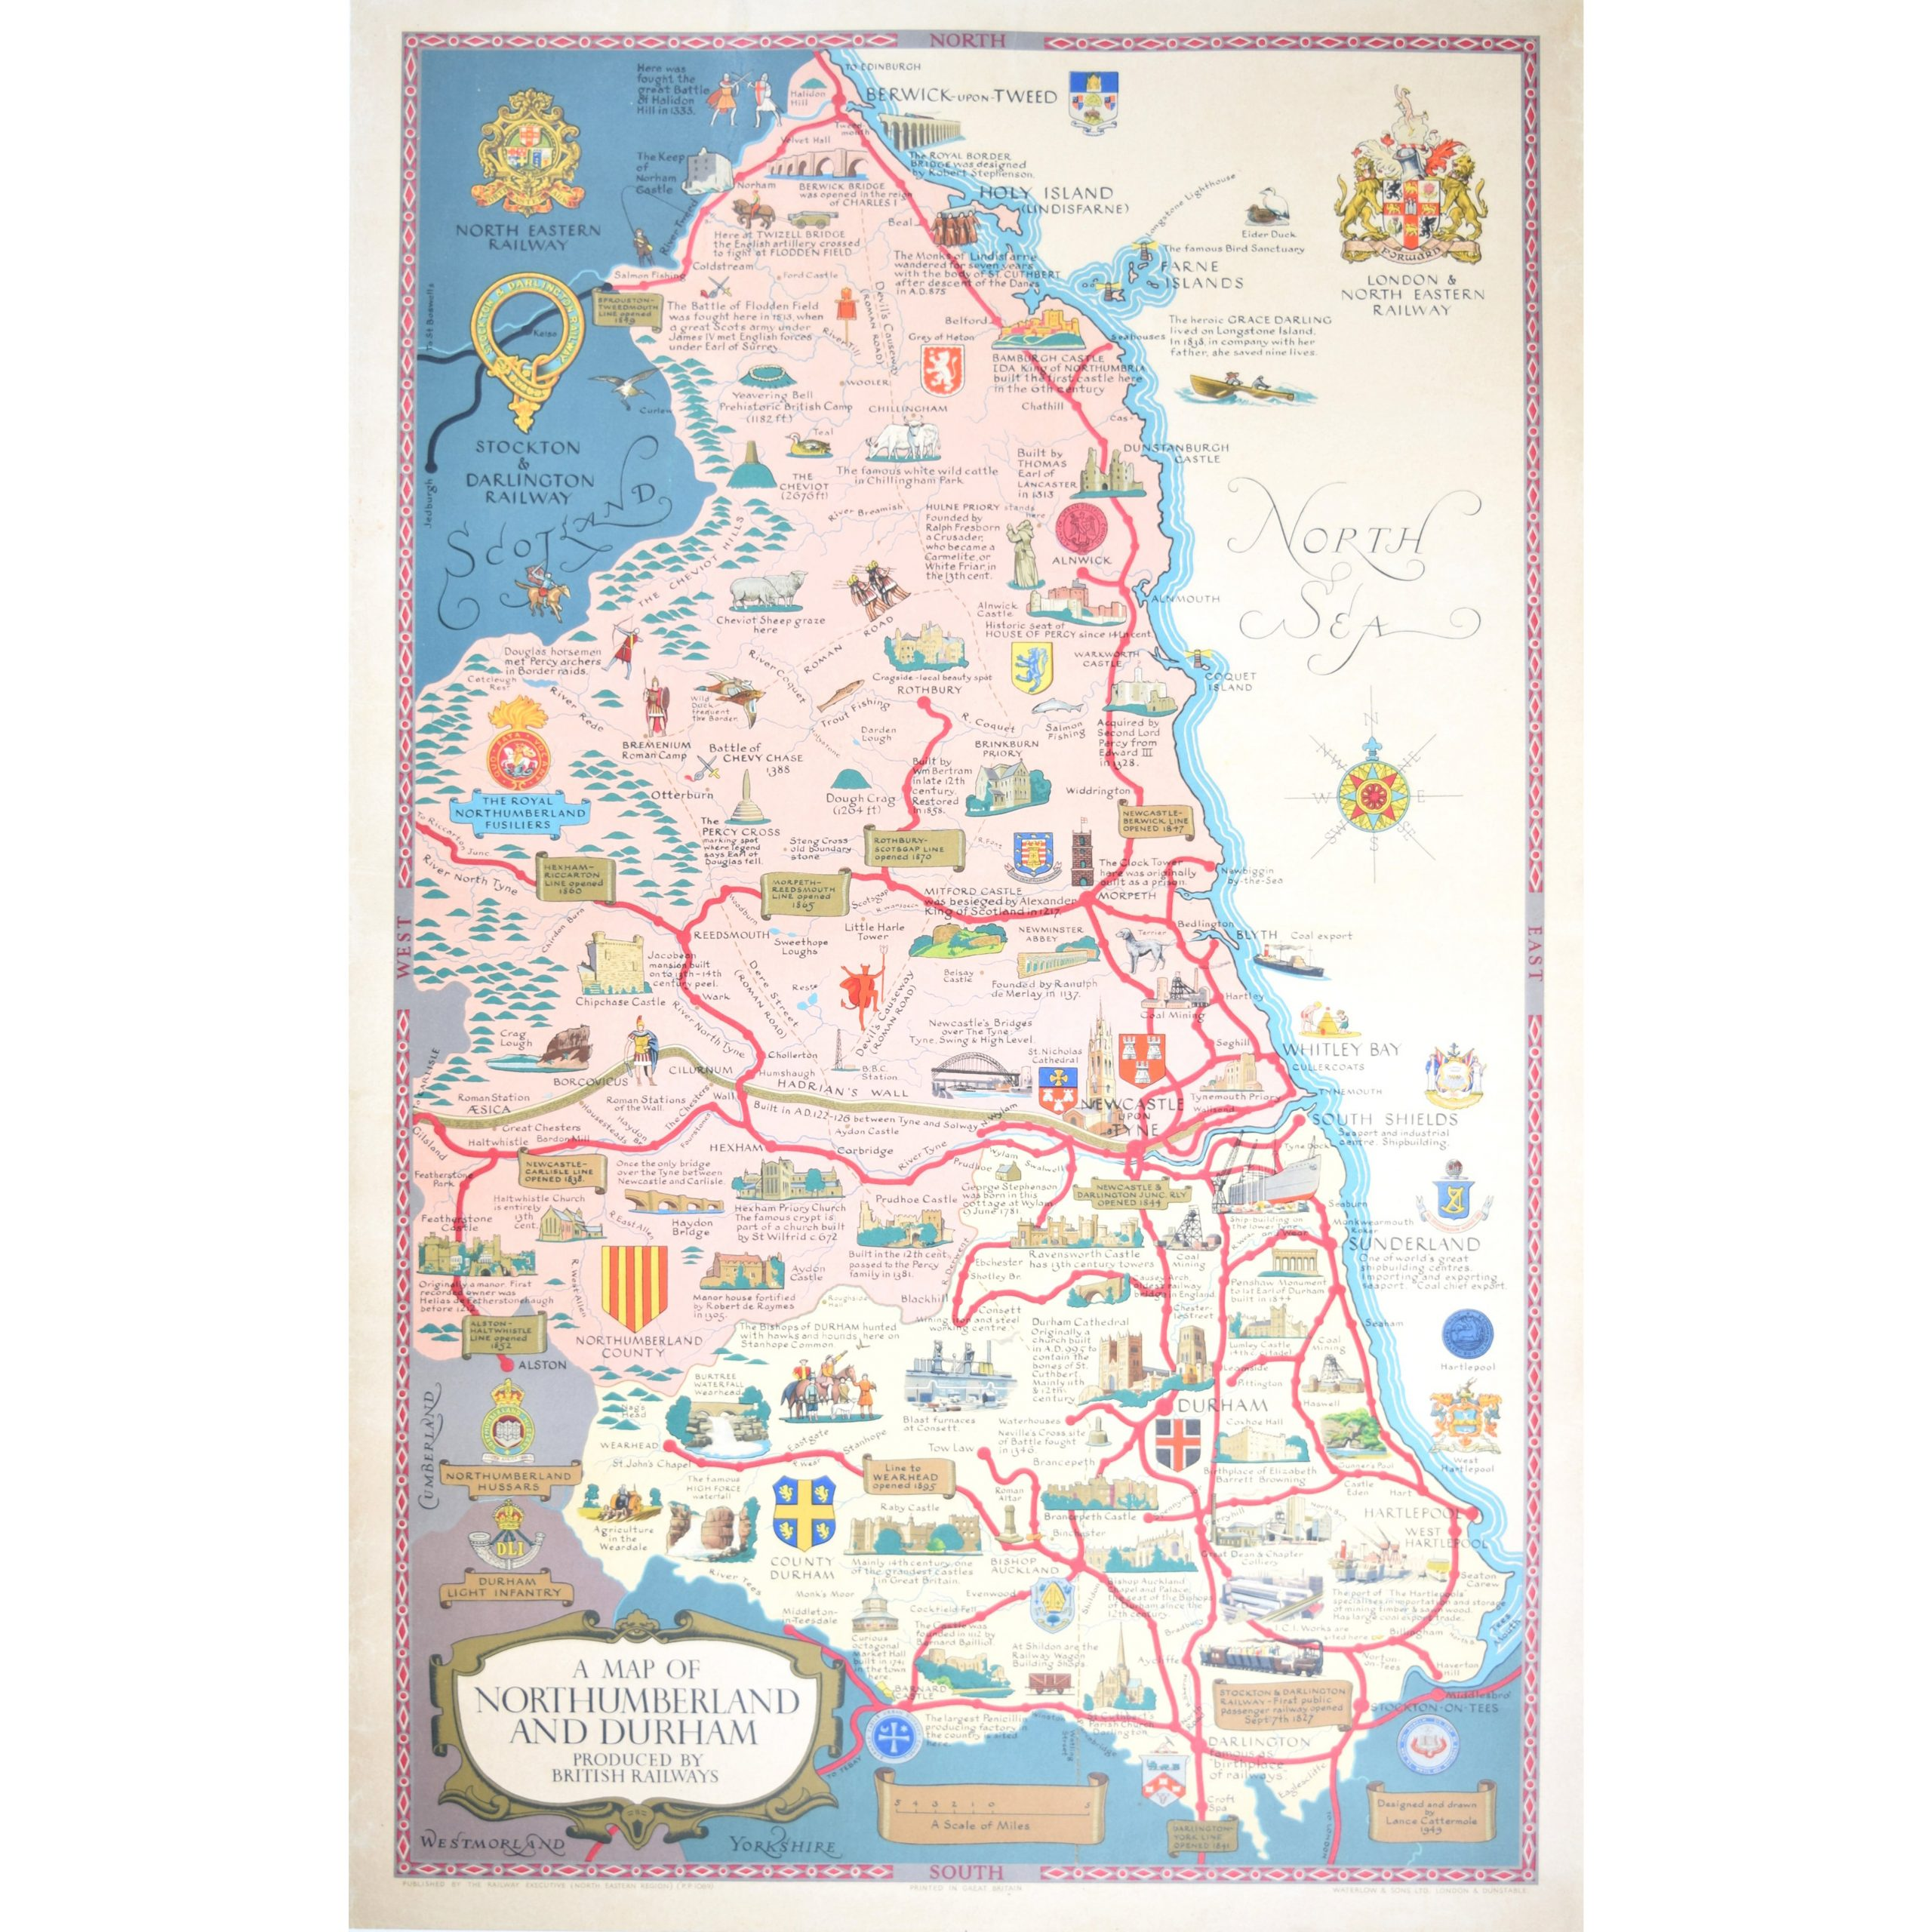 Lance Cottermole Original Poster Map Northumberland & Durham British Railways